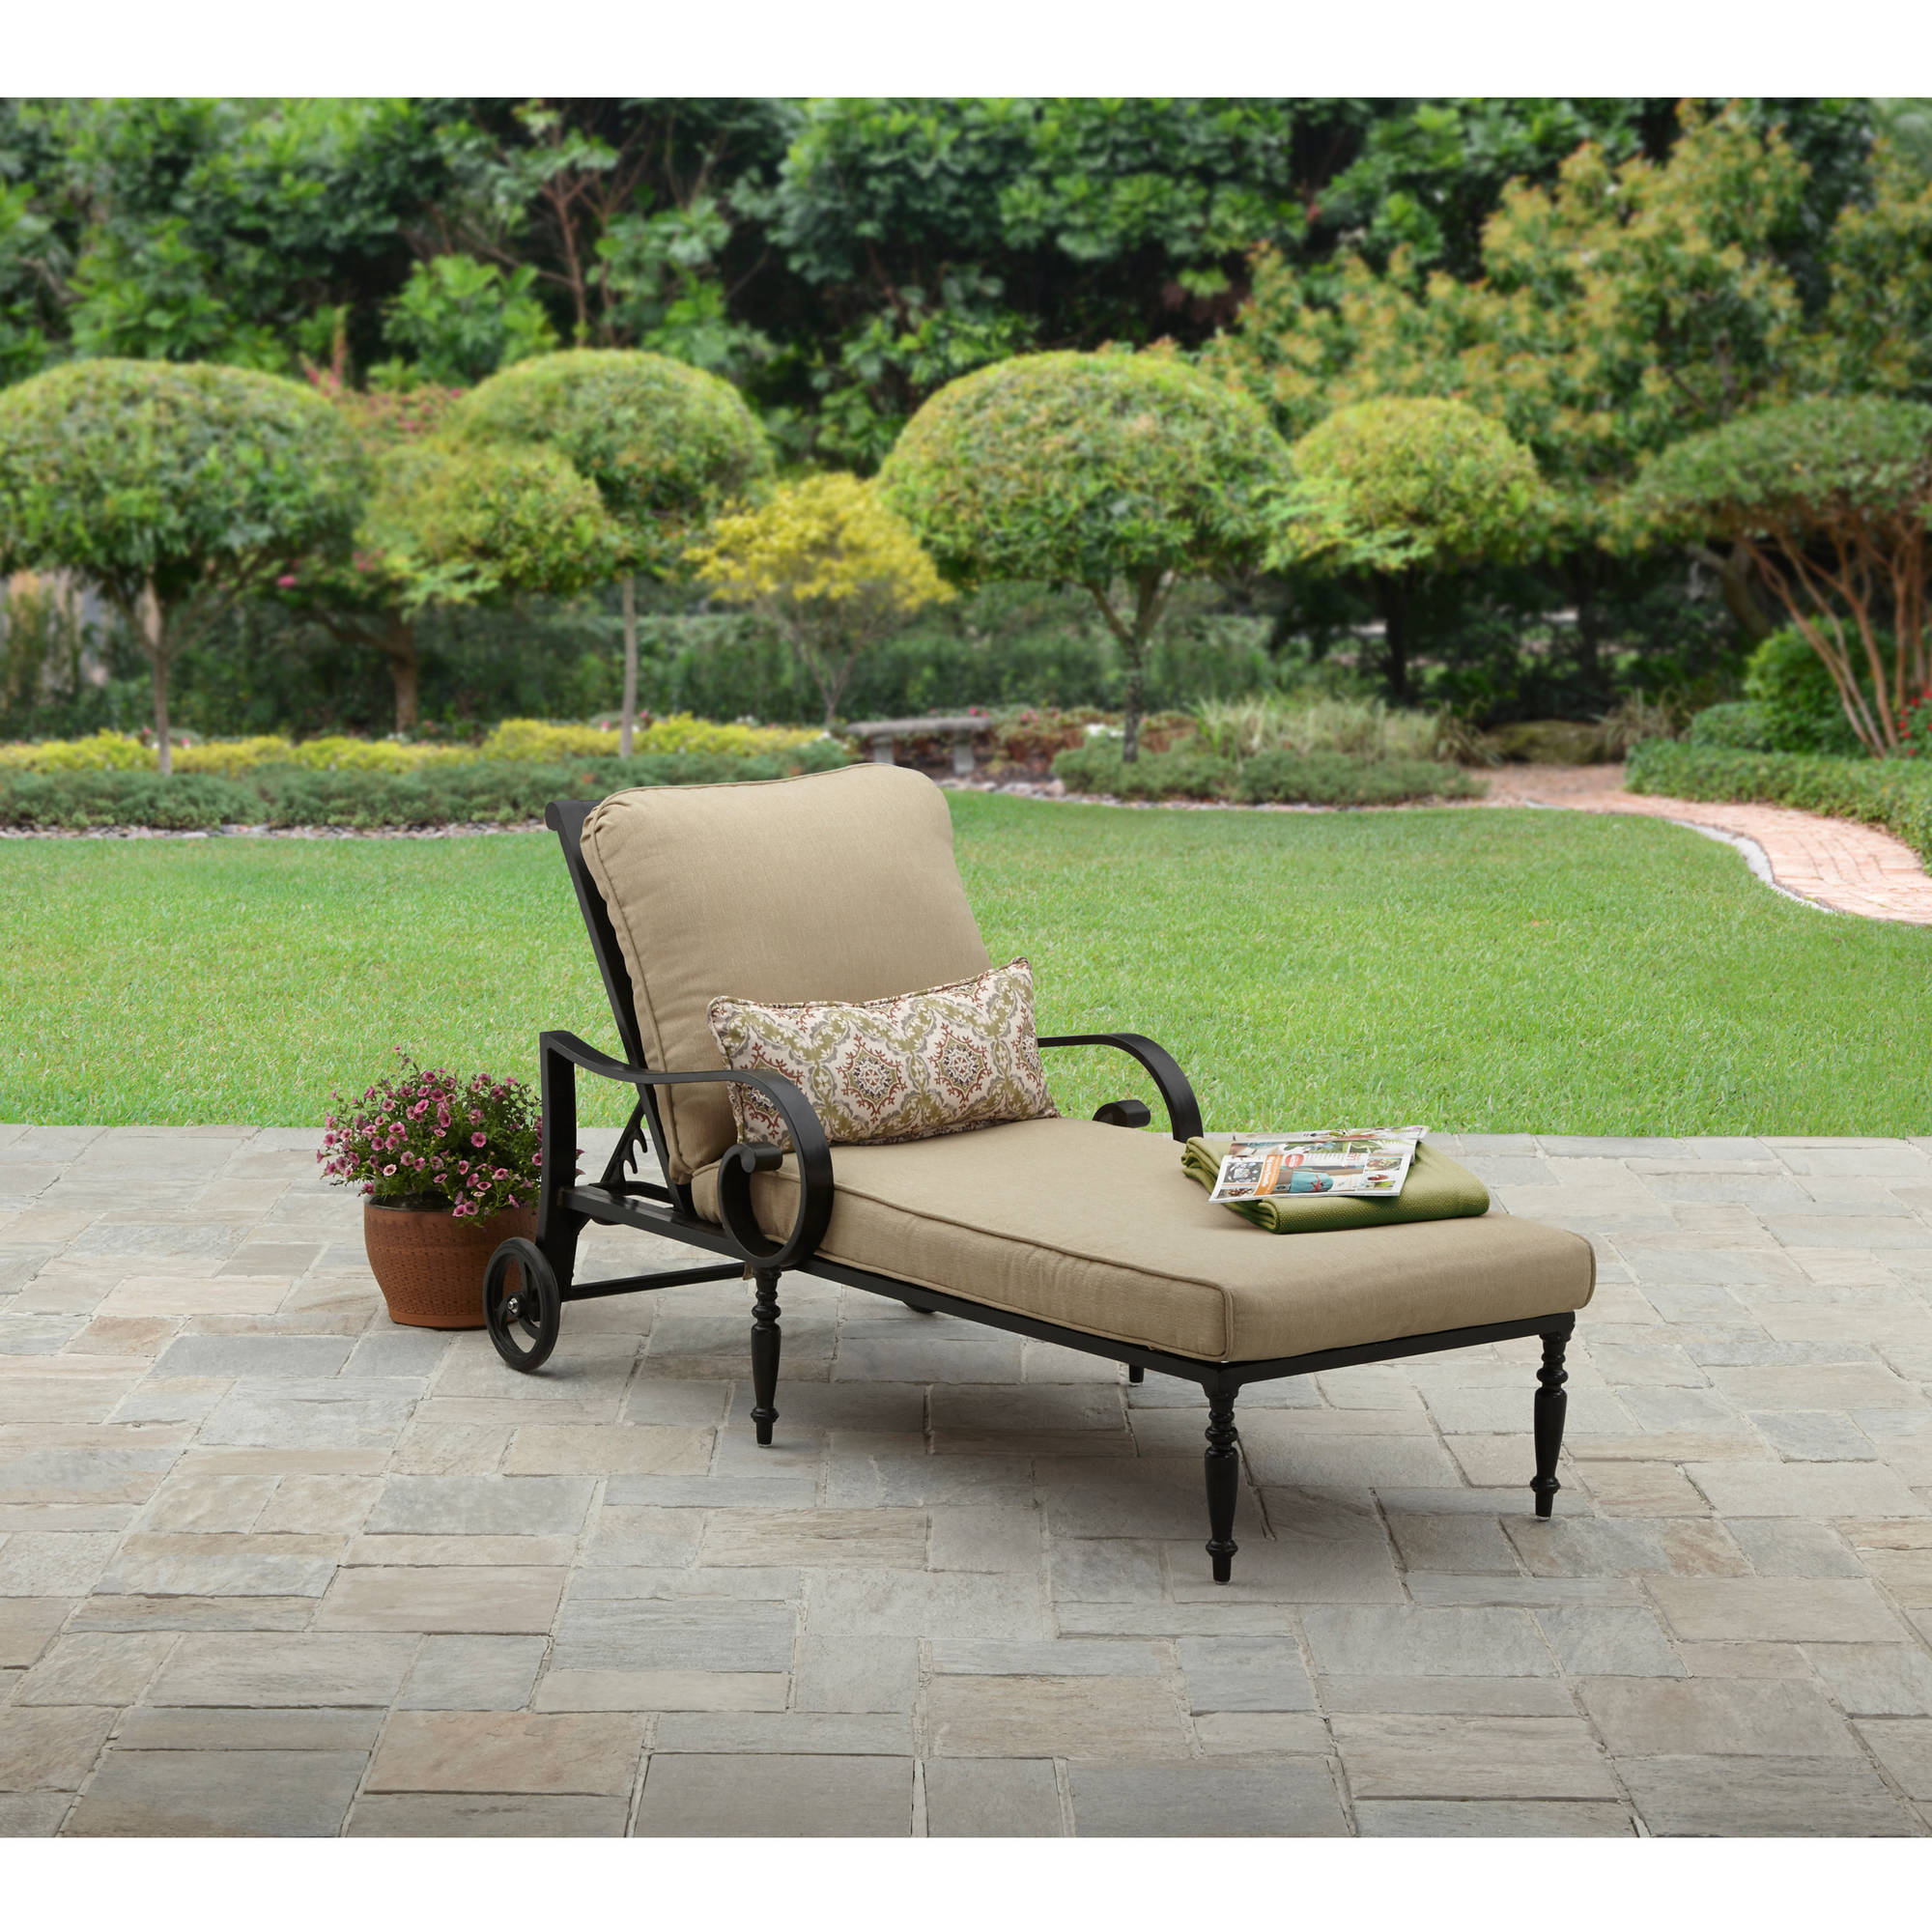 Better Homes & Gardens Englewood Aluminum Outdoor Chaise Lounge